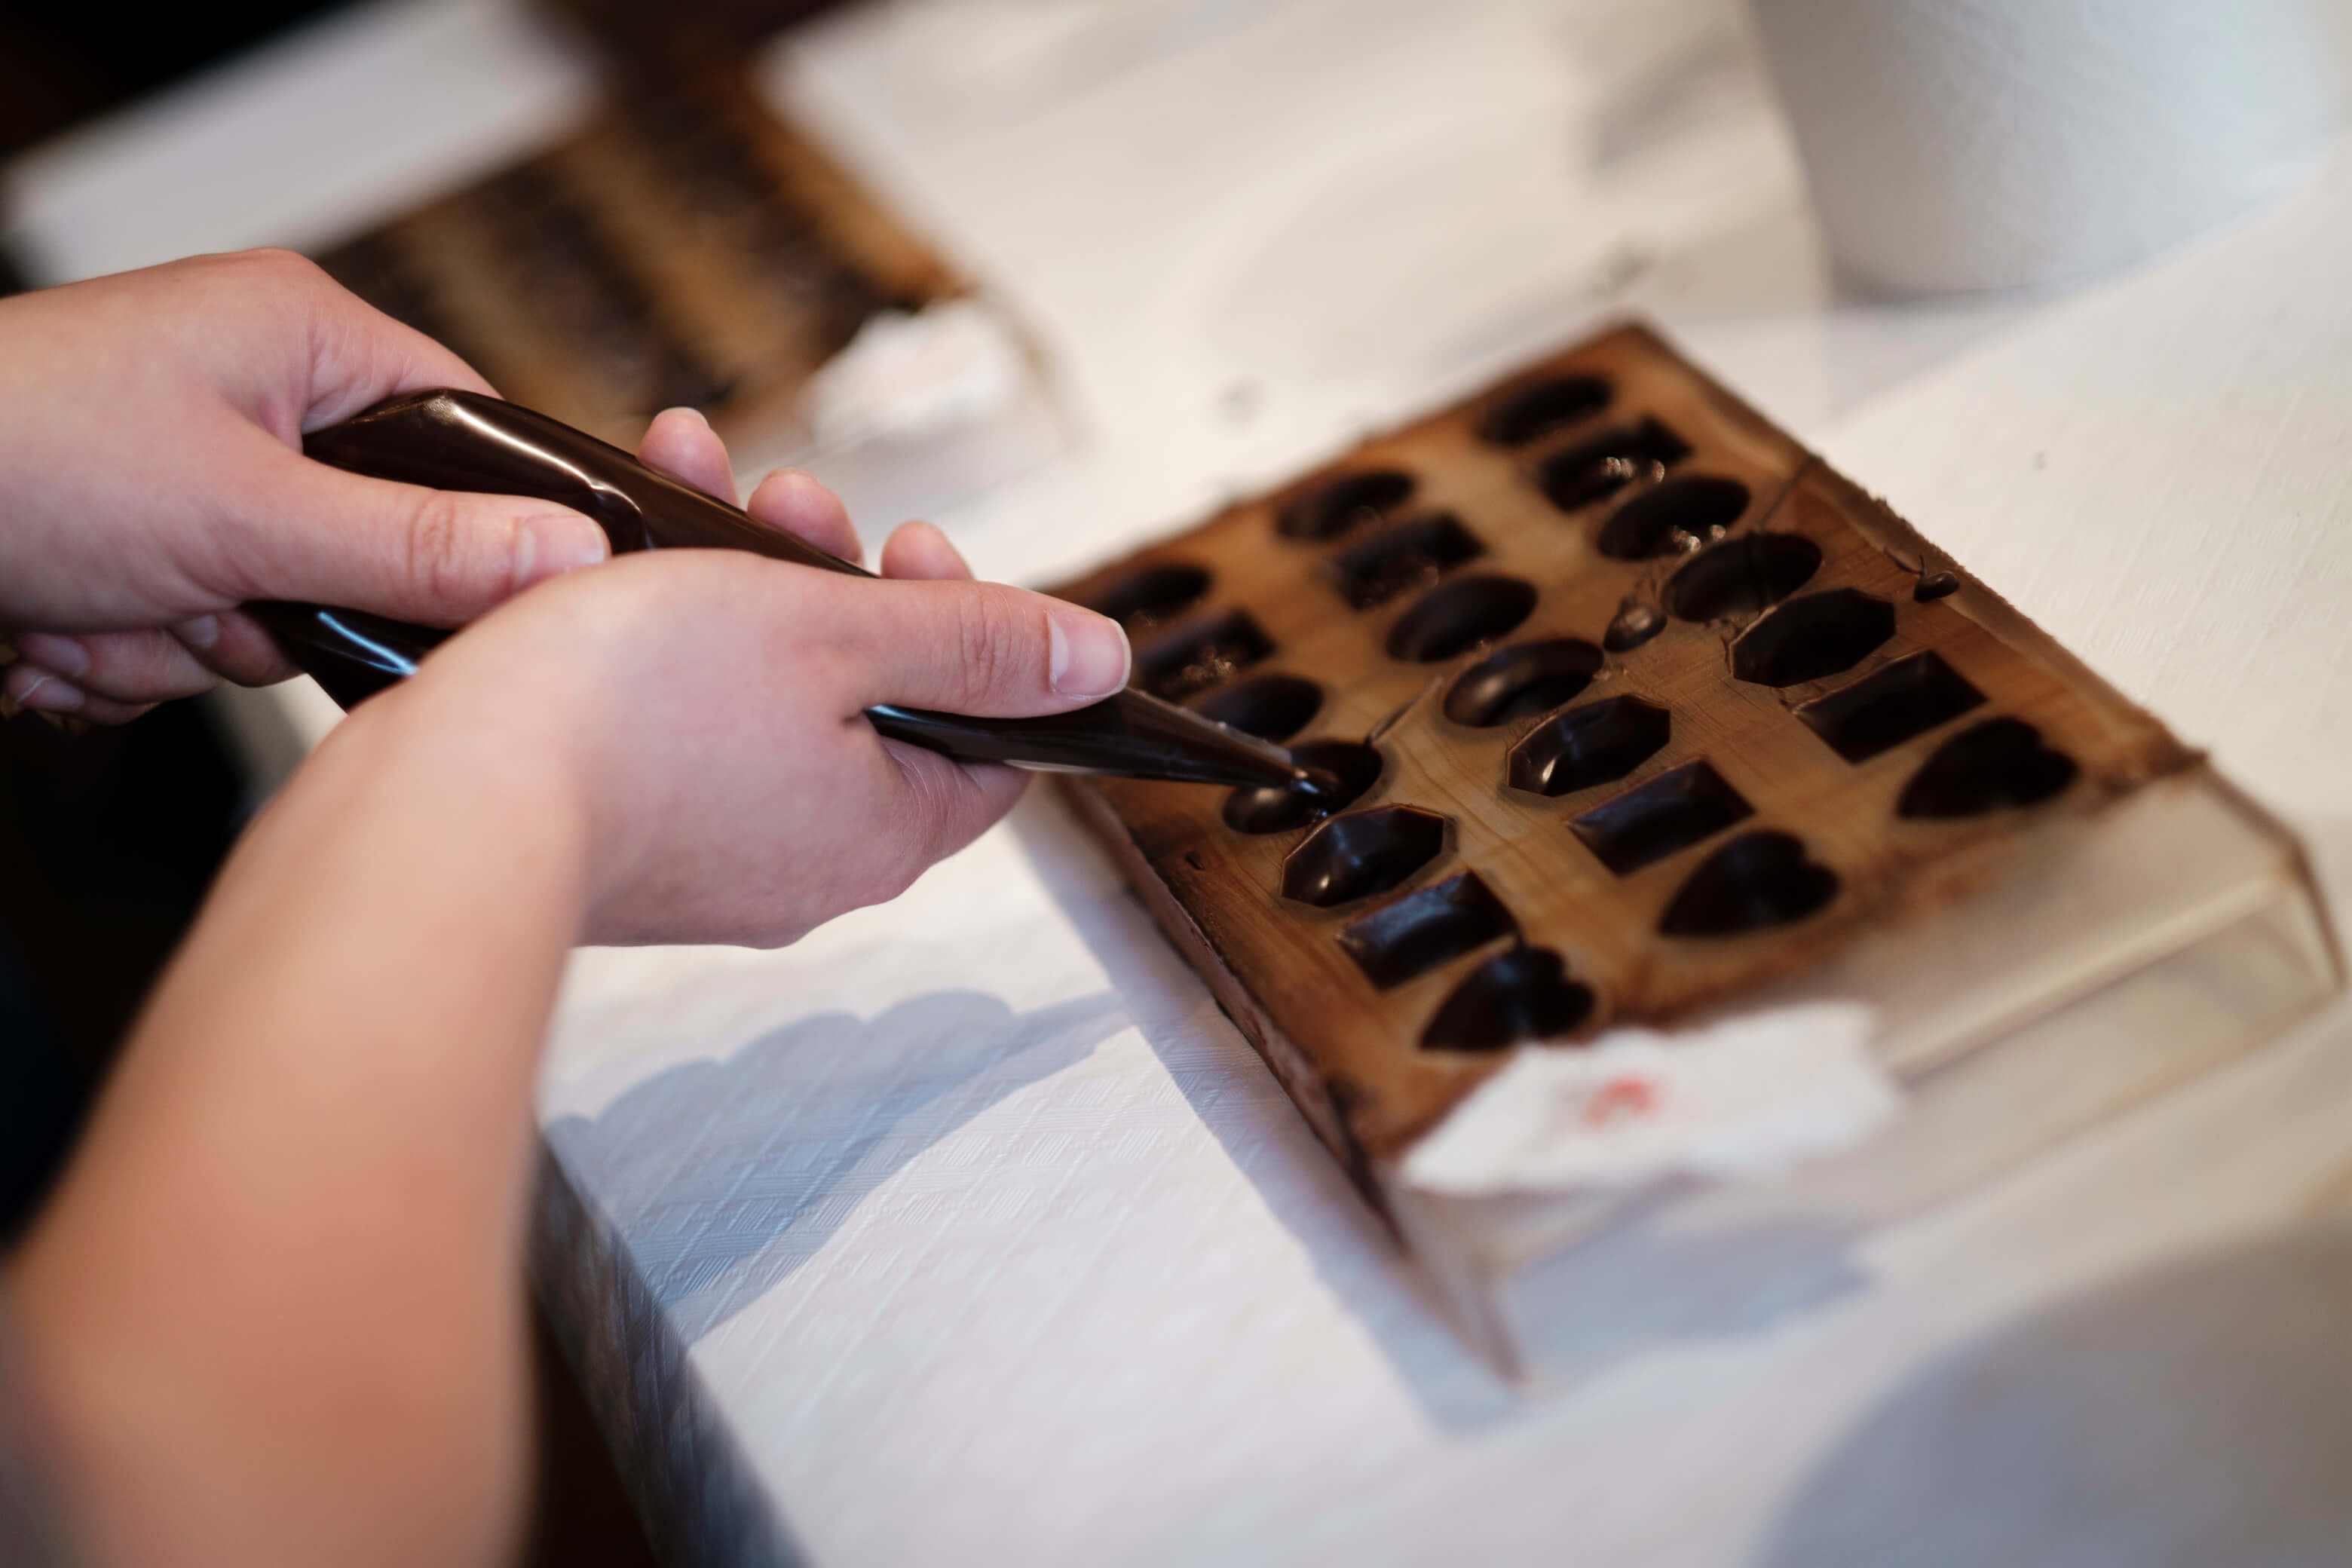 fill up chocolates by yourself at our workshop